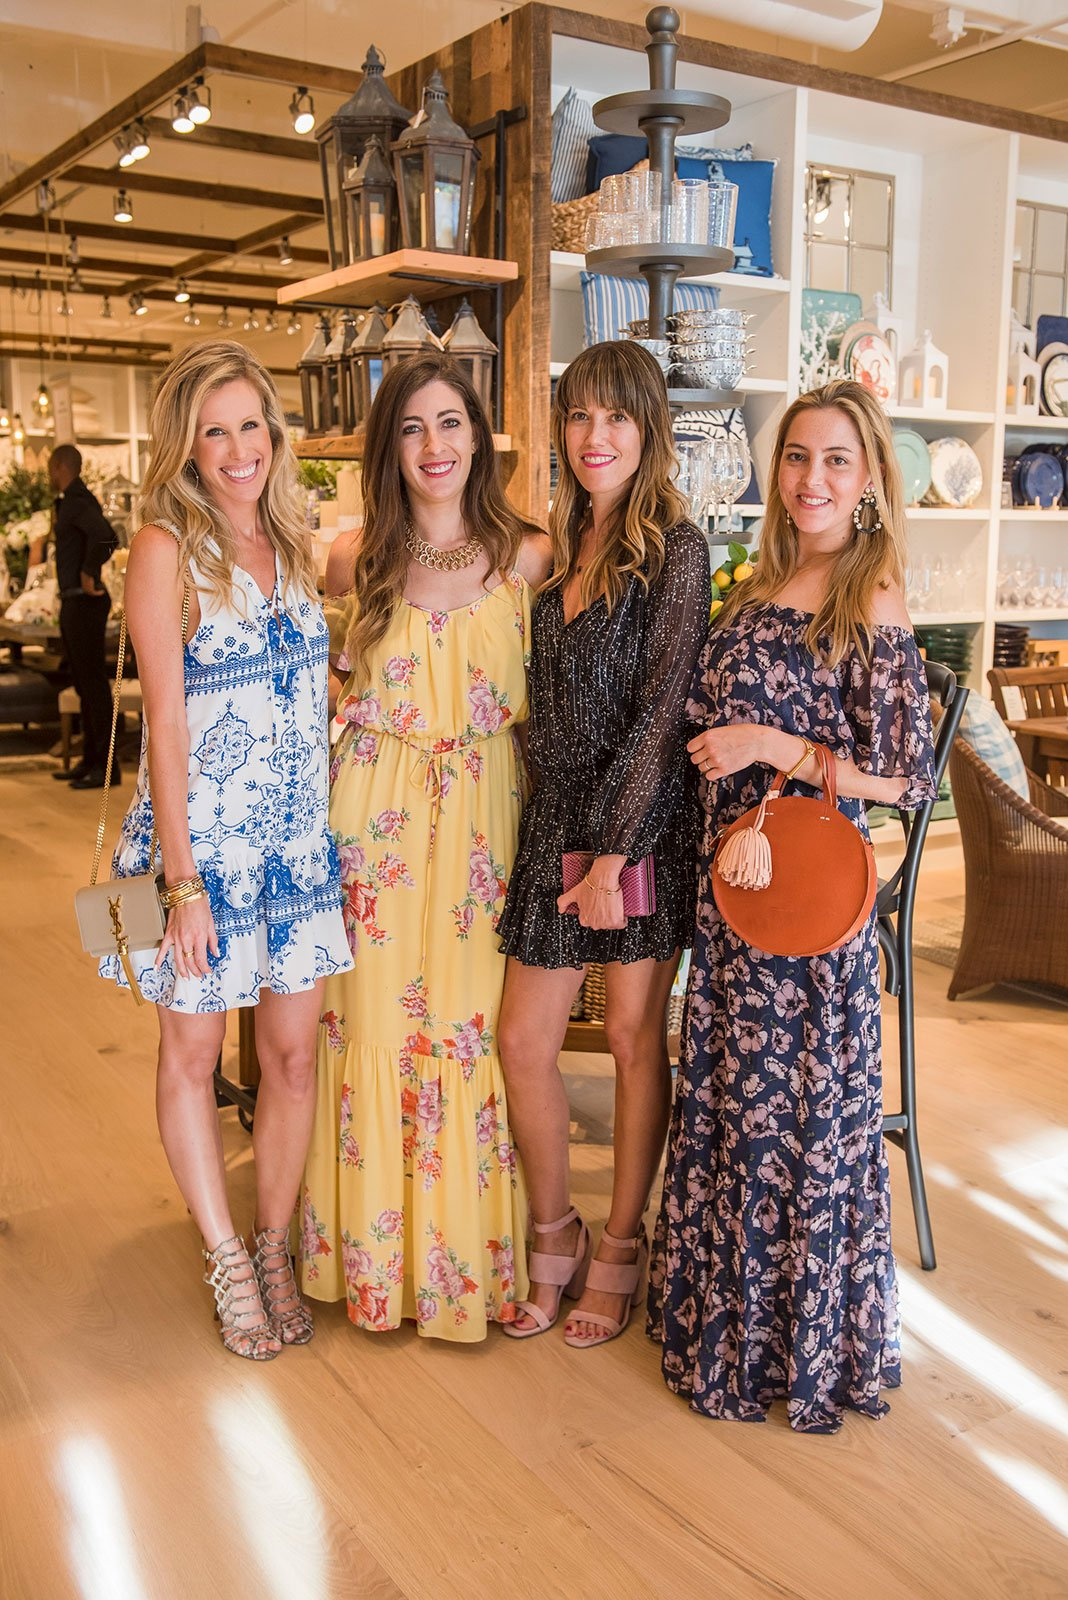 Pottery Barn South Beach Grand Opening co-hosts Amanda Gluck, Katya Libim, Ana Linares and Amri Kibbler